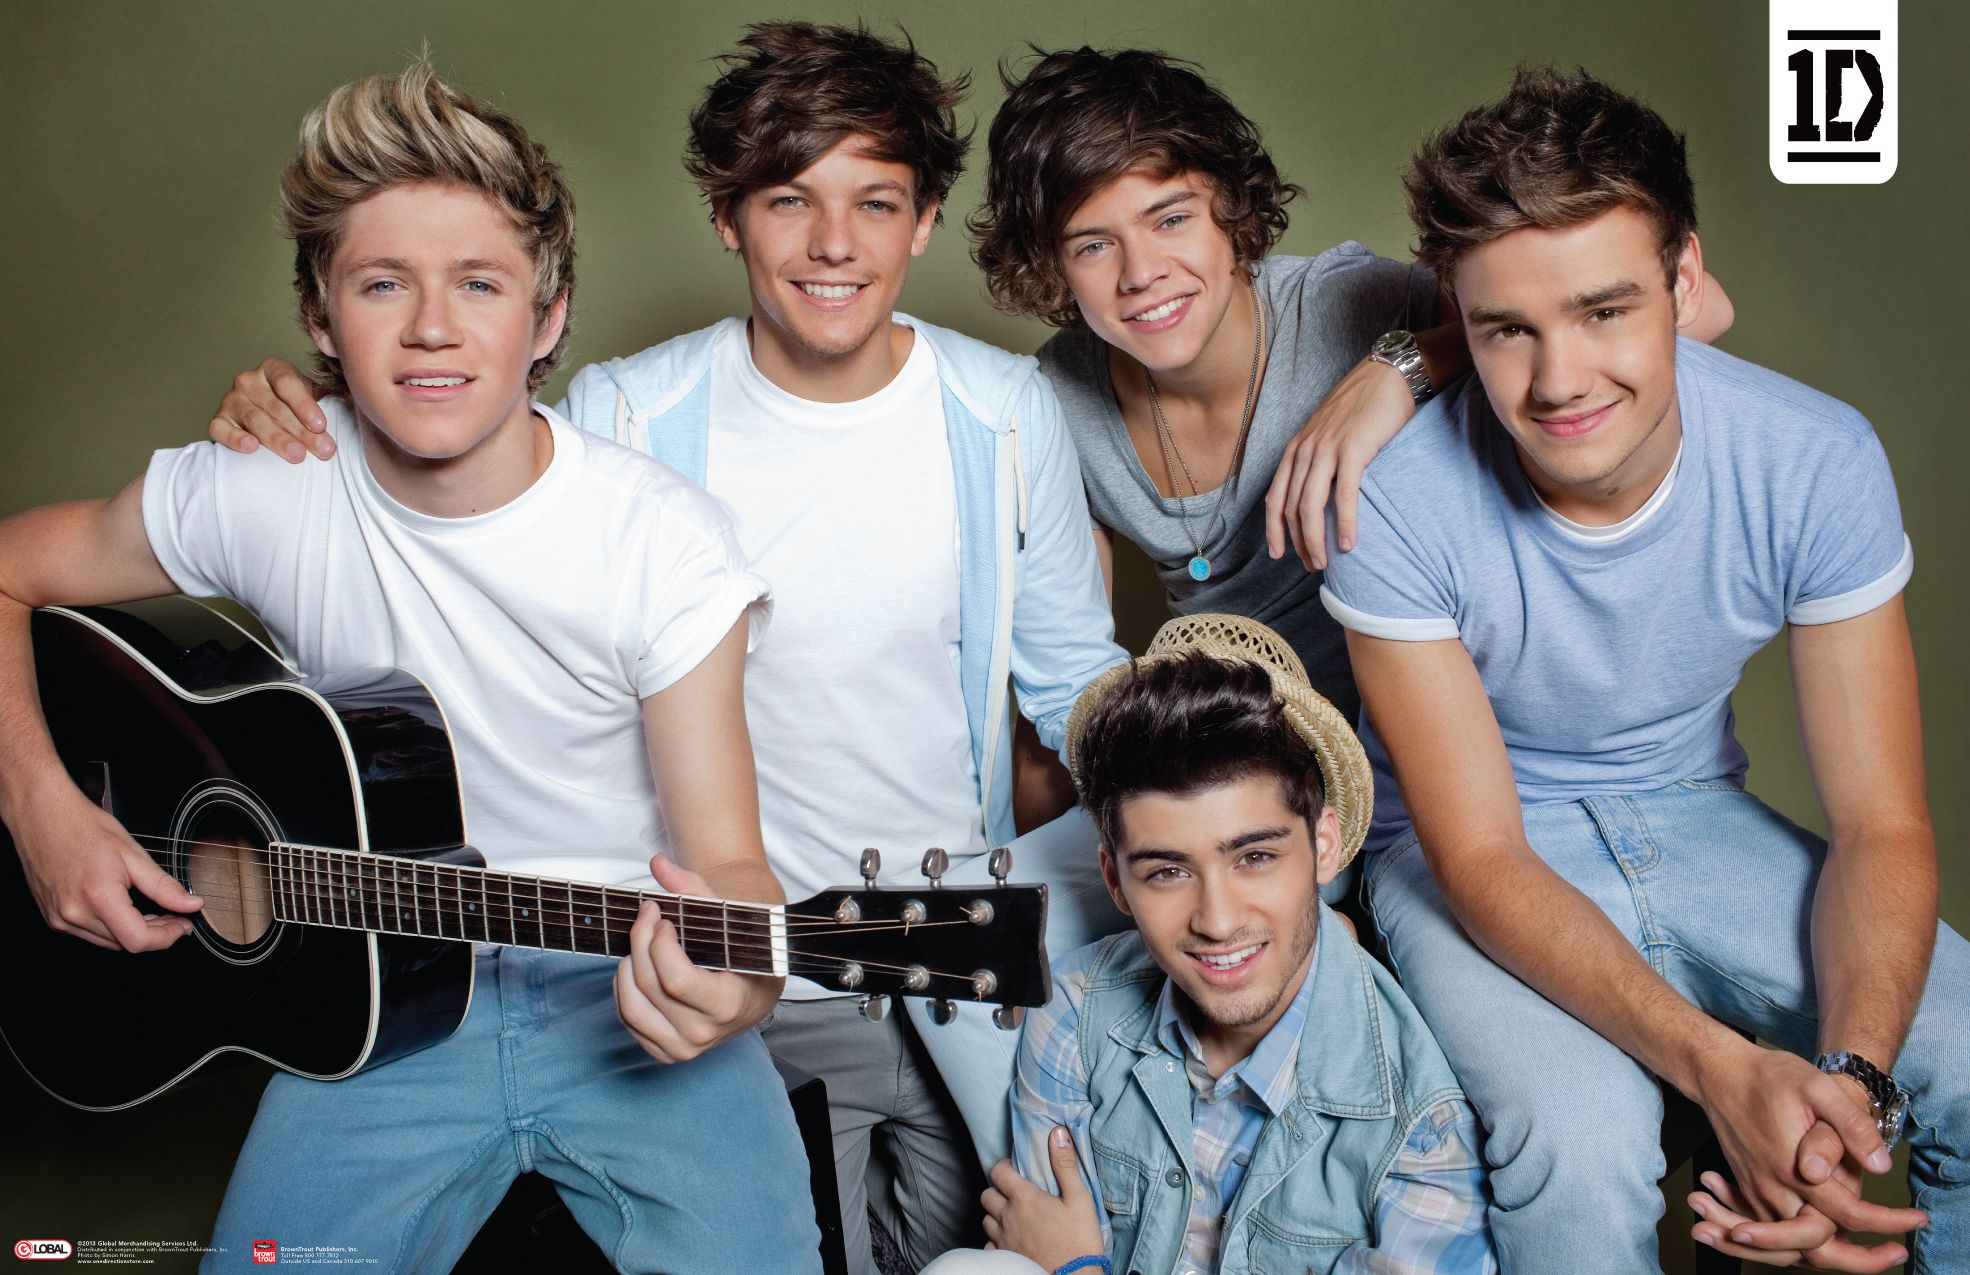 One Direction Poster And Poster Books One Direction Posters Music Poster One Direction